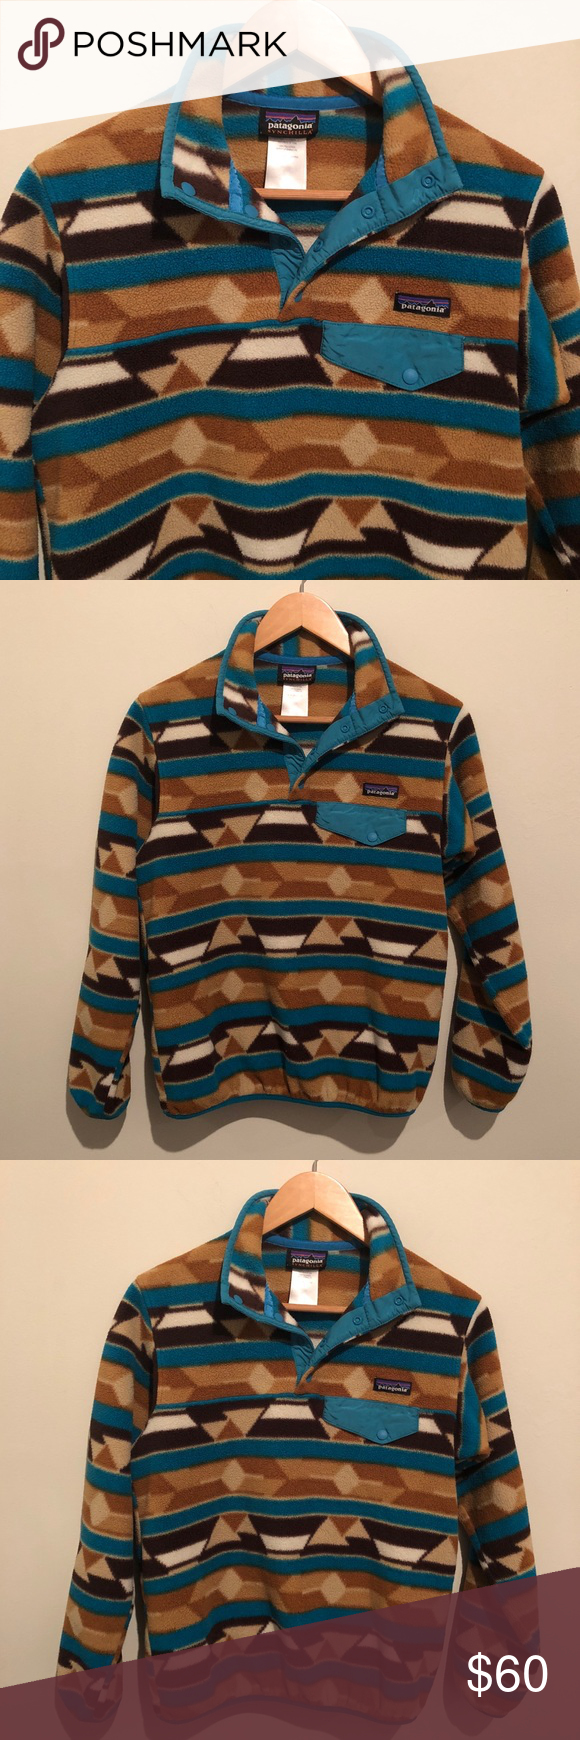 Patterned Patagonia Fleece Interesting Inspiration